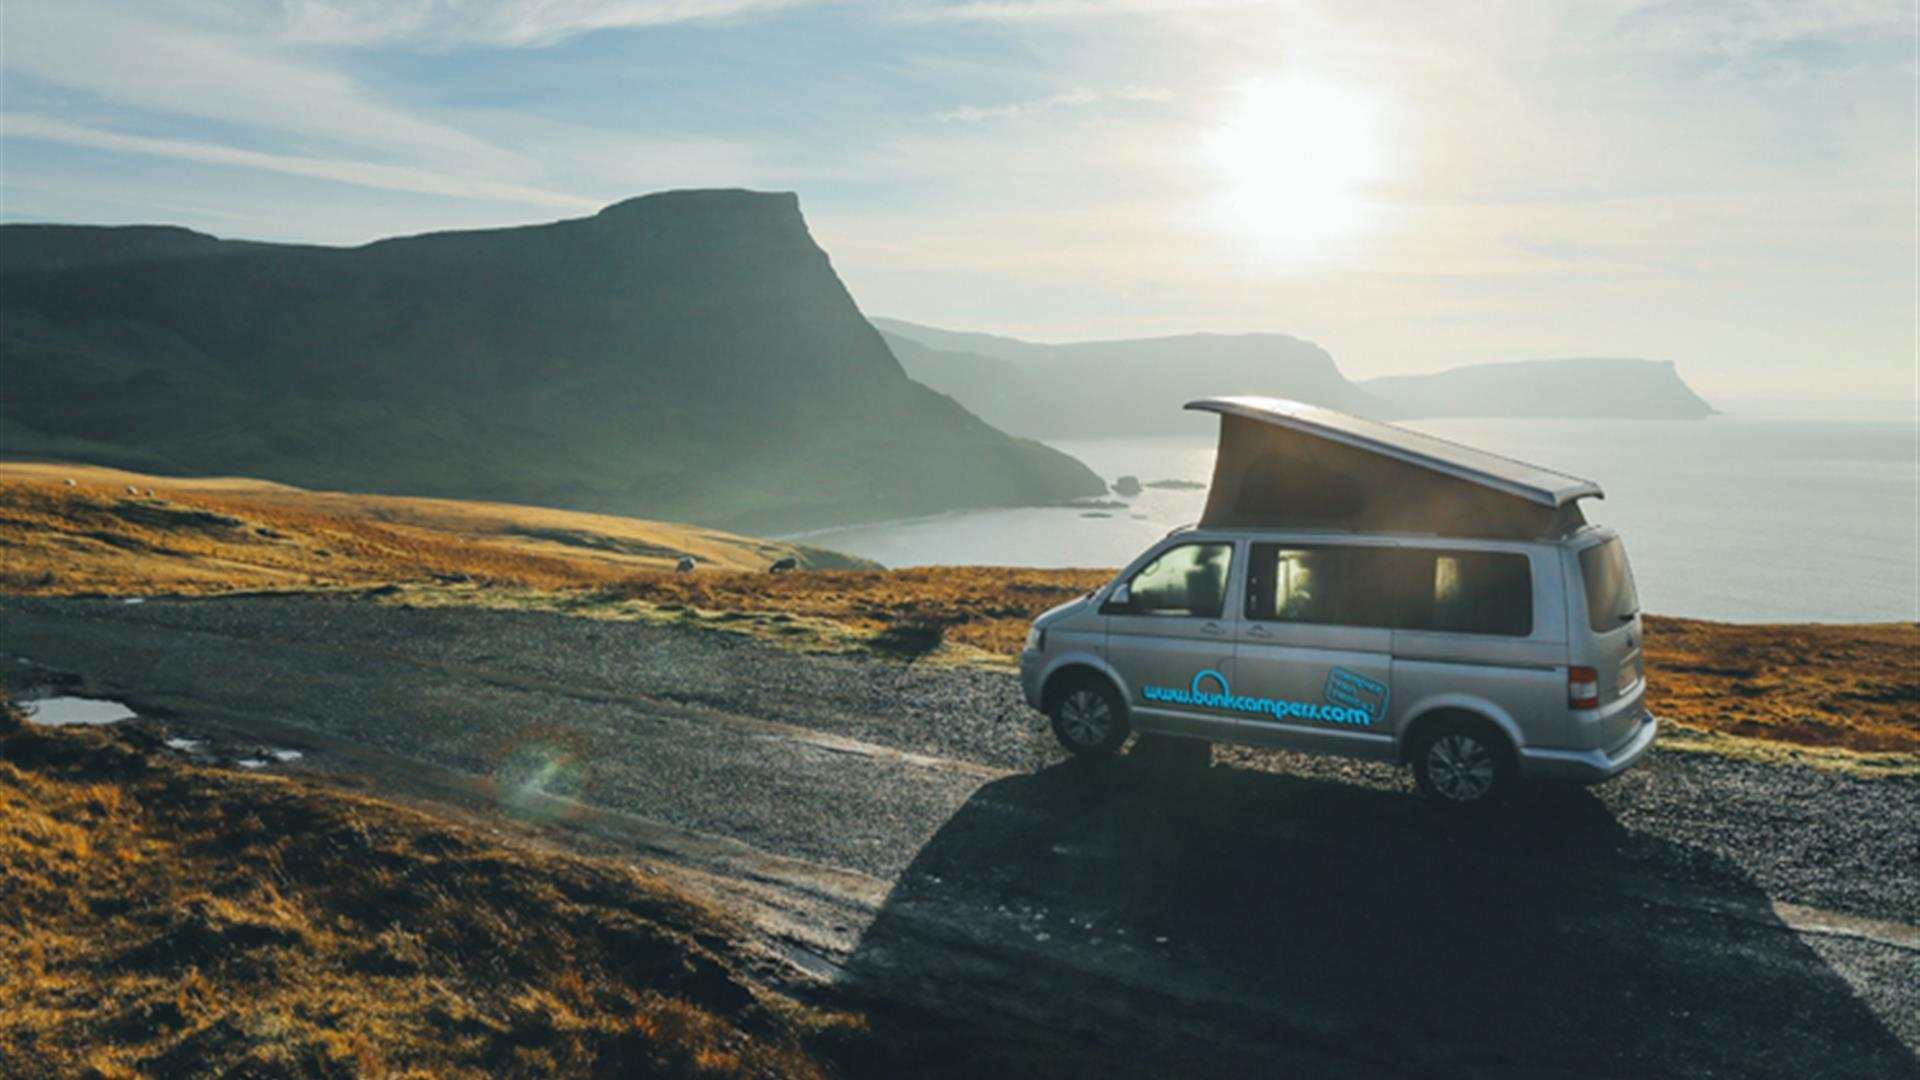 Image is of campervan driving down a road with sea and mountains in view